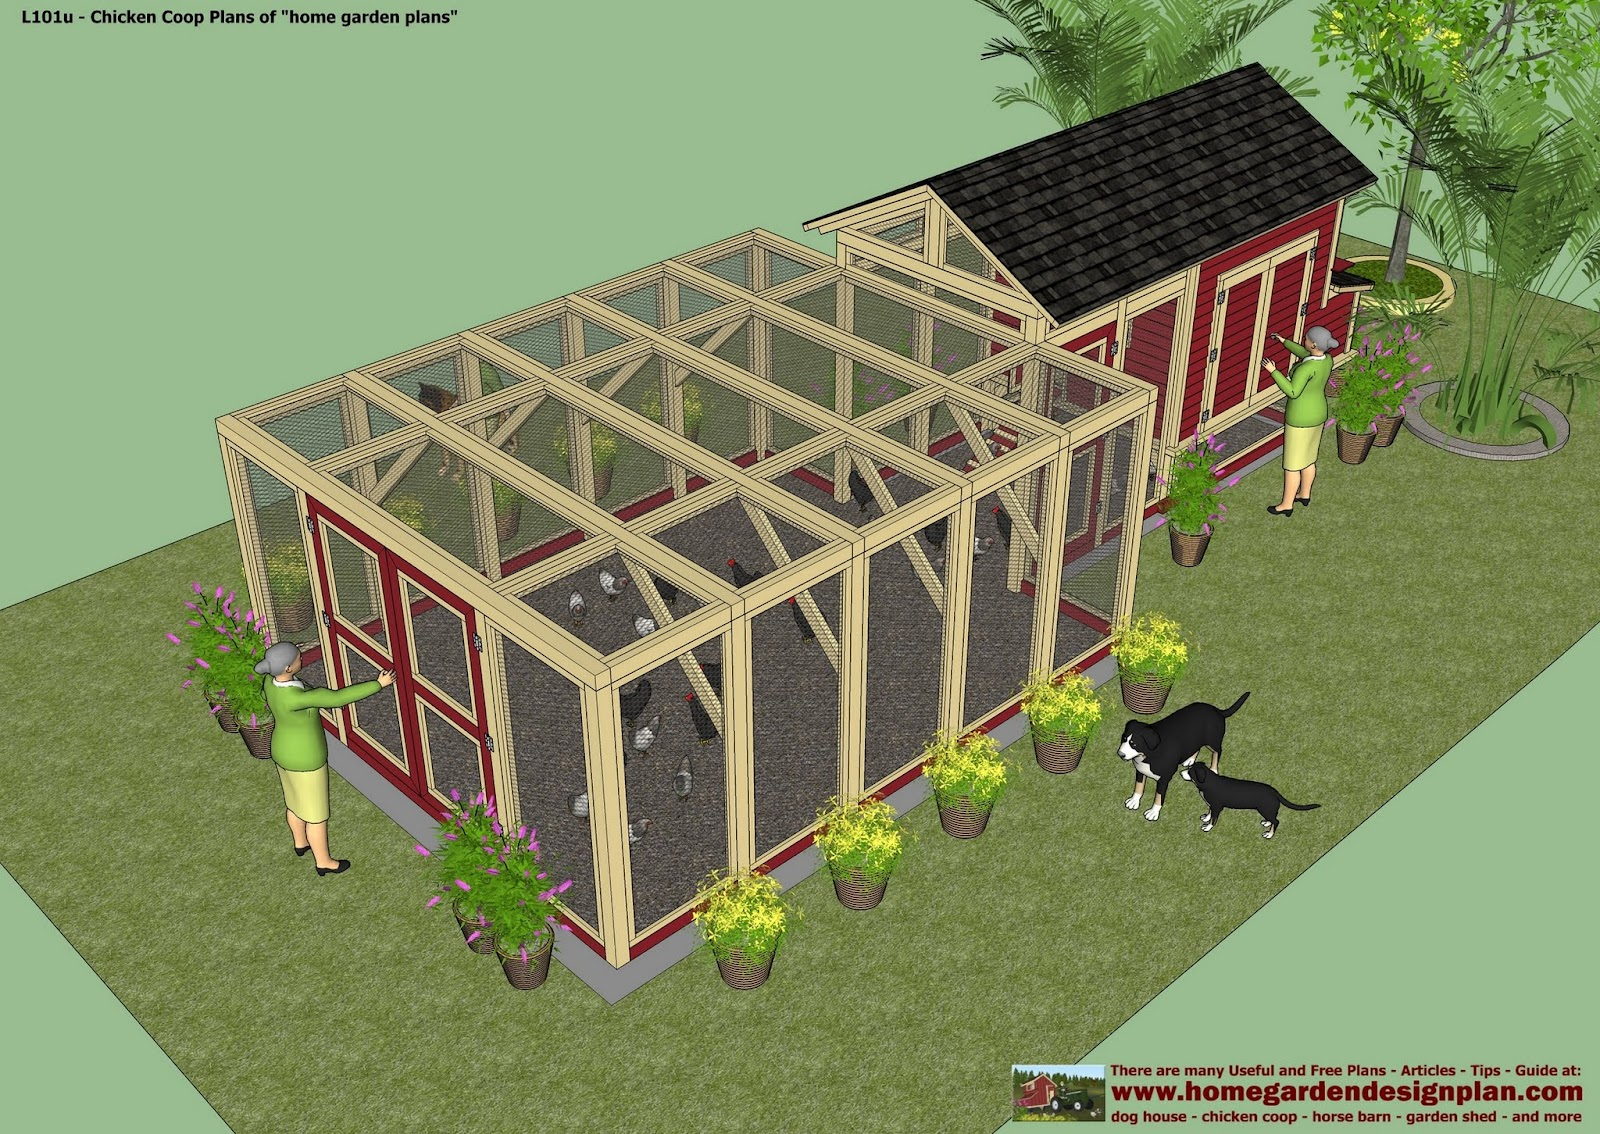 Free plans for building a chicken coop floor plans for Free coop plans